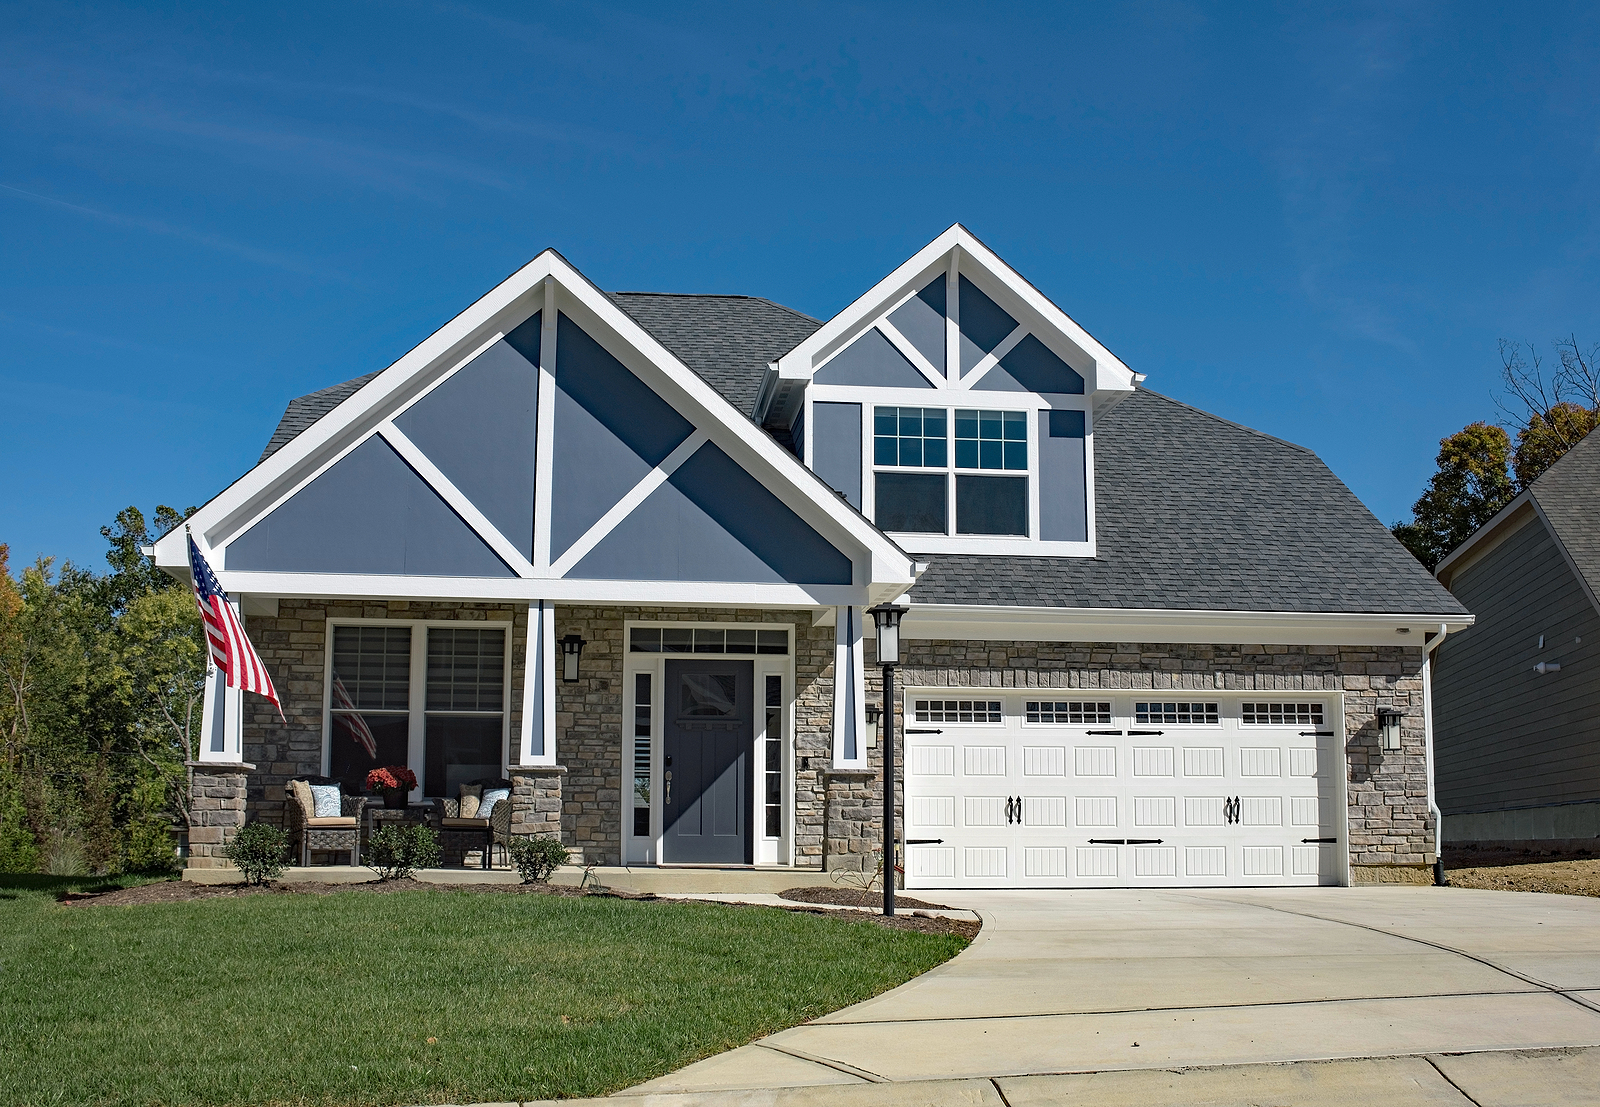 New-American-Stone-Home-with-Blue-Decorative-Gables-and-White-Decorated-Garage-Door